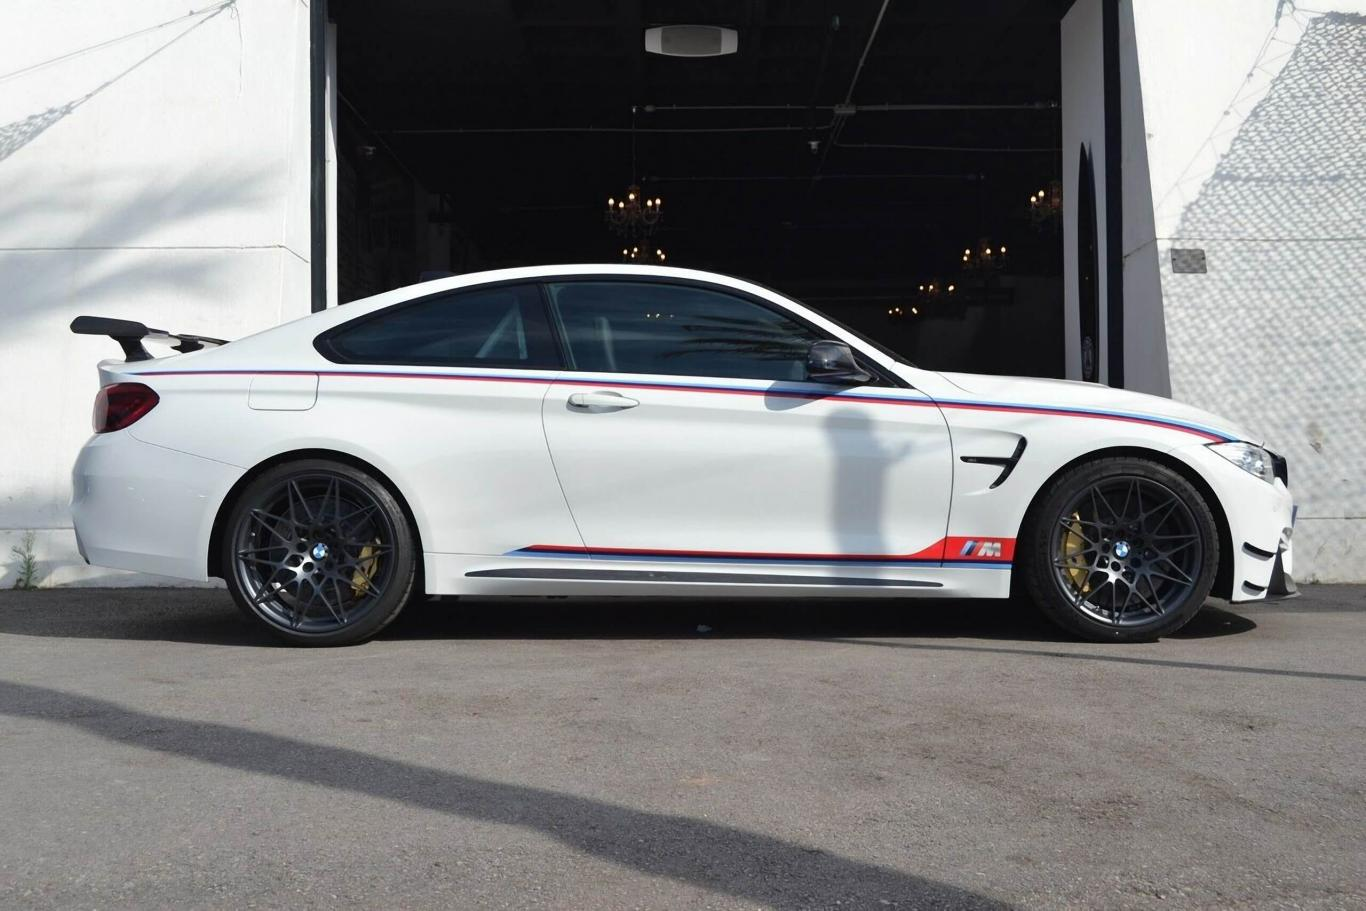 BMW M4 Coupe >> Bmw M4 Coupe Gts Dtm Only 200 Units Produced